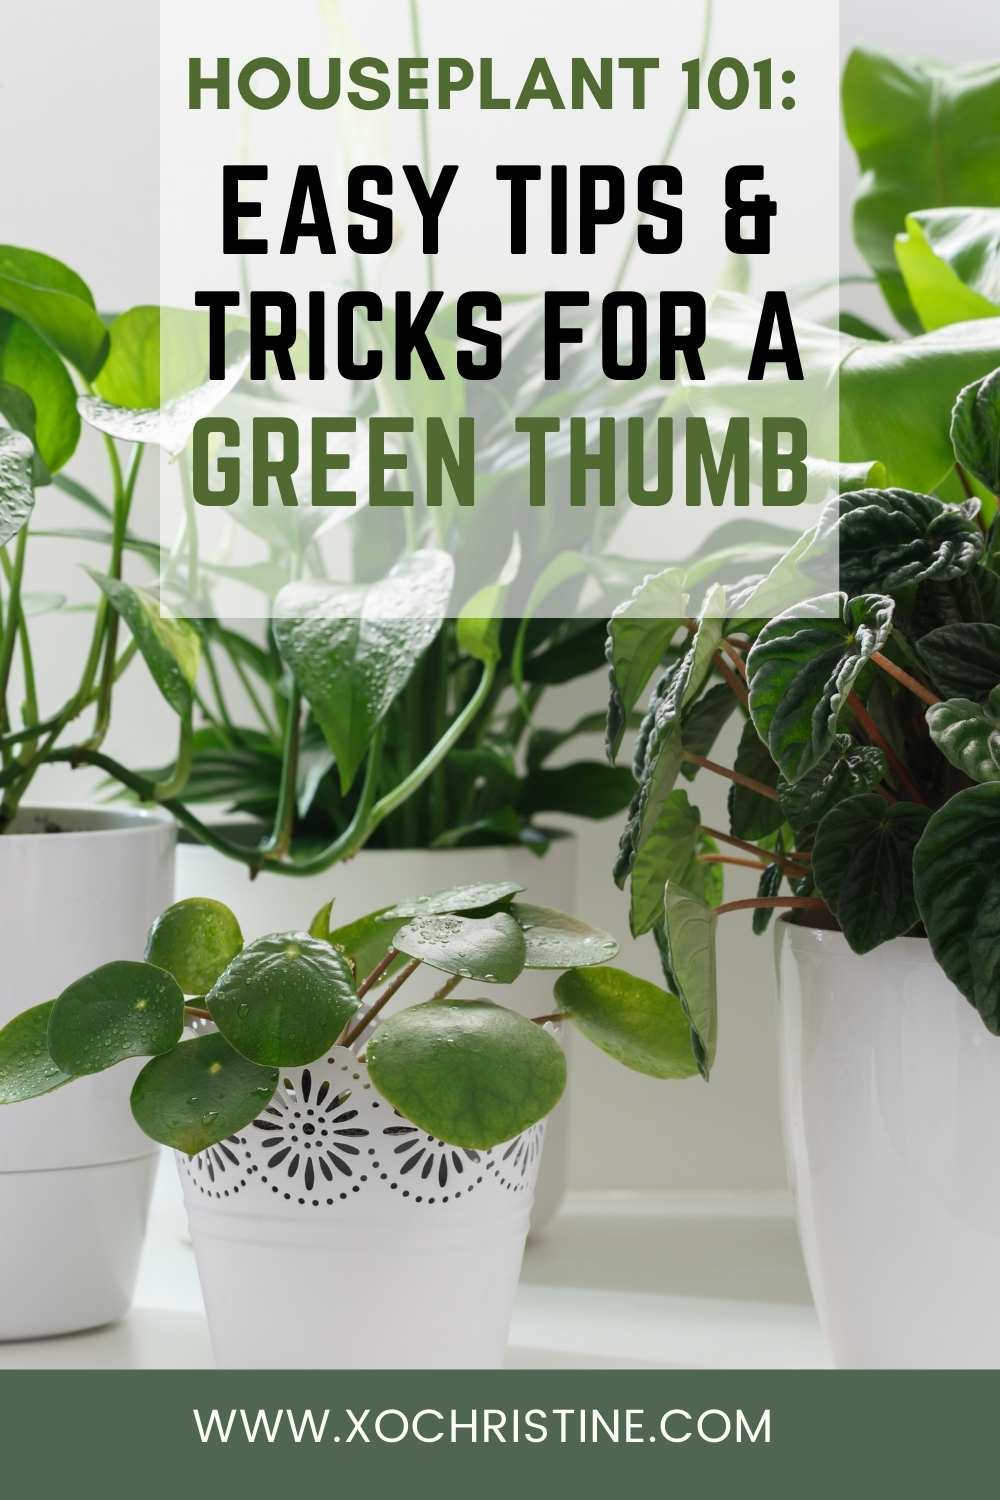 How to take care of indoor plants (10+ easy tips + tricks for beginners)